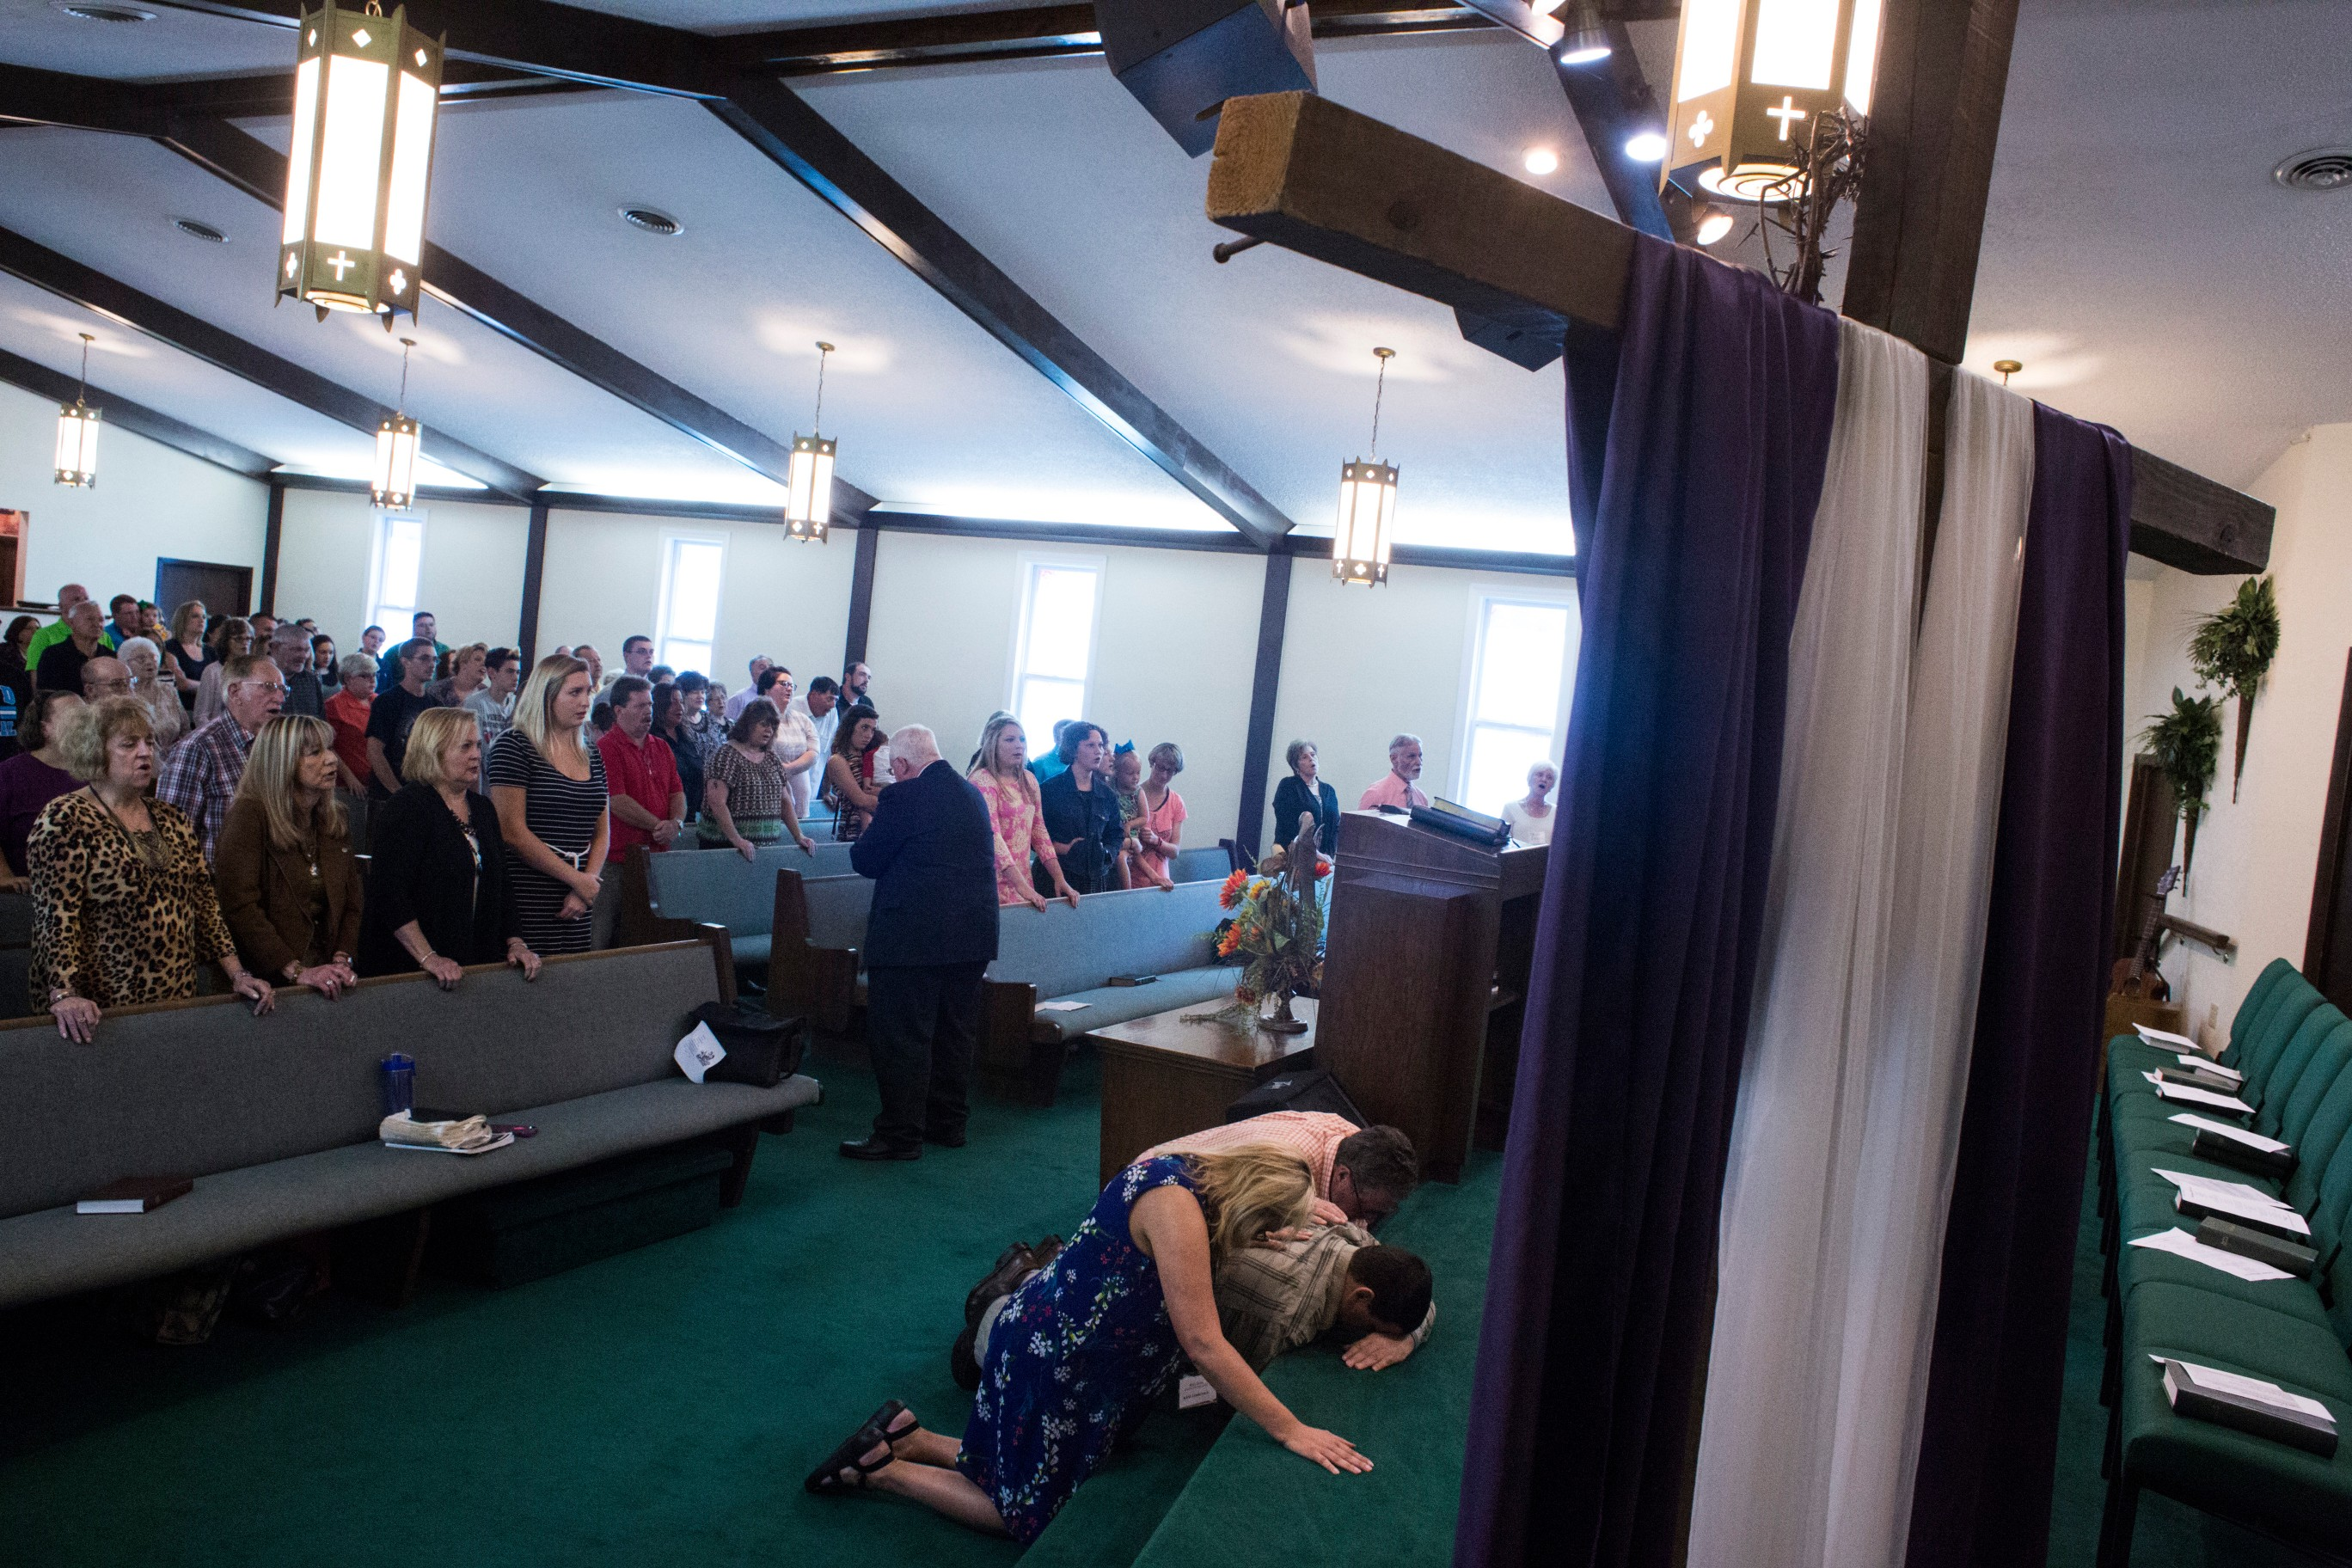 Mary Sloane, an English teacher at Floyd Central High School, prays for a member of her congregation at First Baptist Church in McDowell, Ky., on Sunday, September 24, 2017. (Photo by Brittany Greeson/GroundTruth)